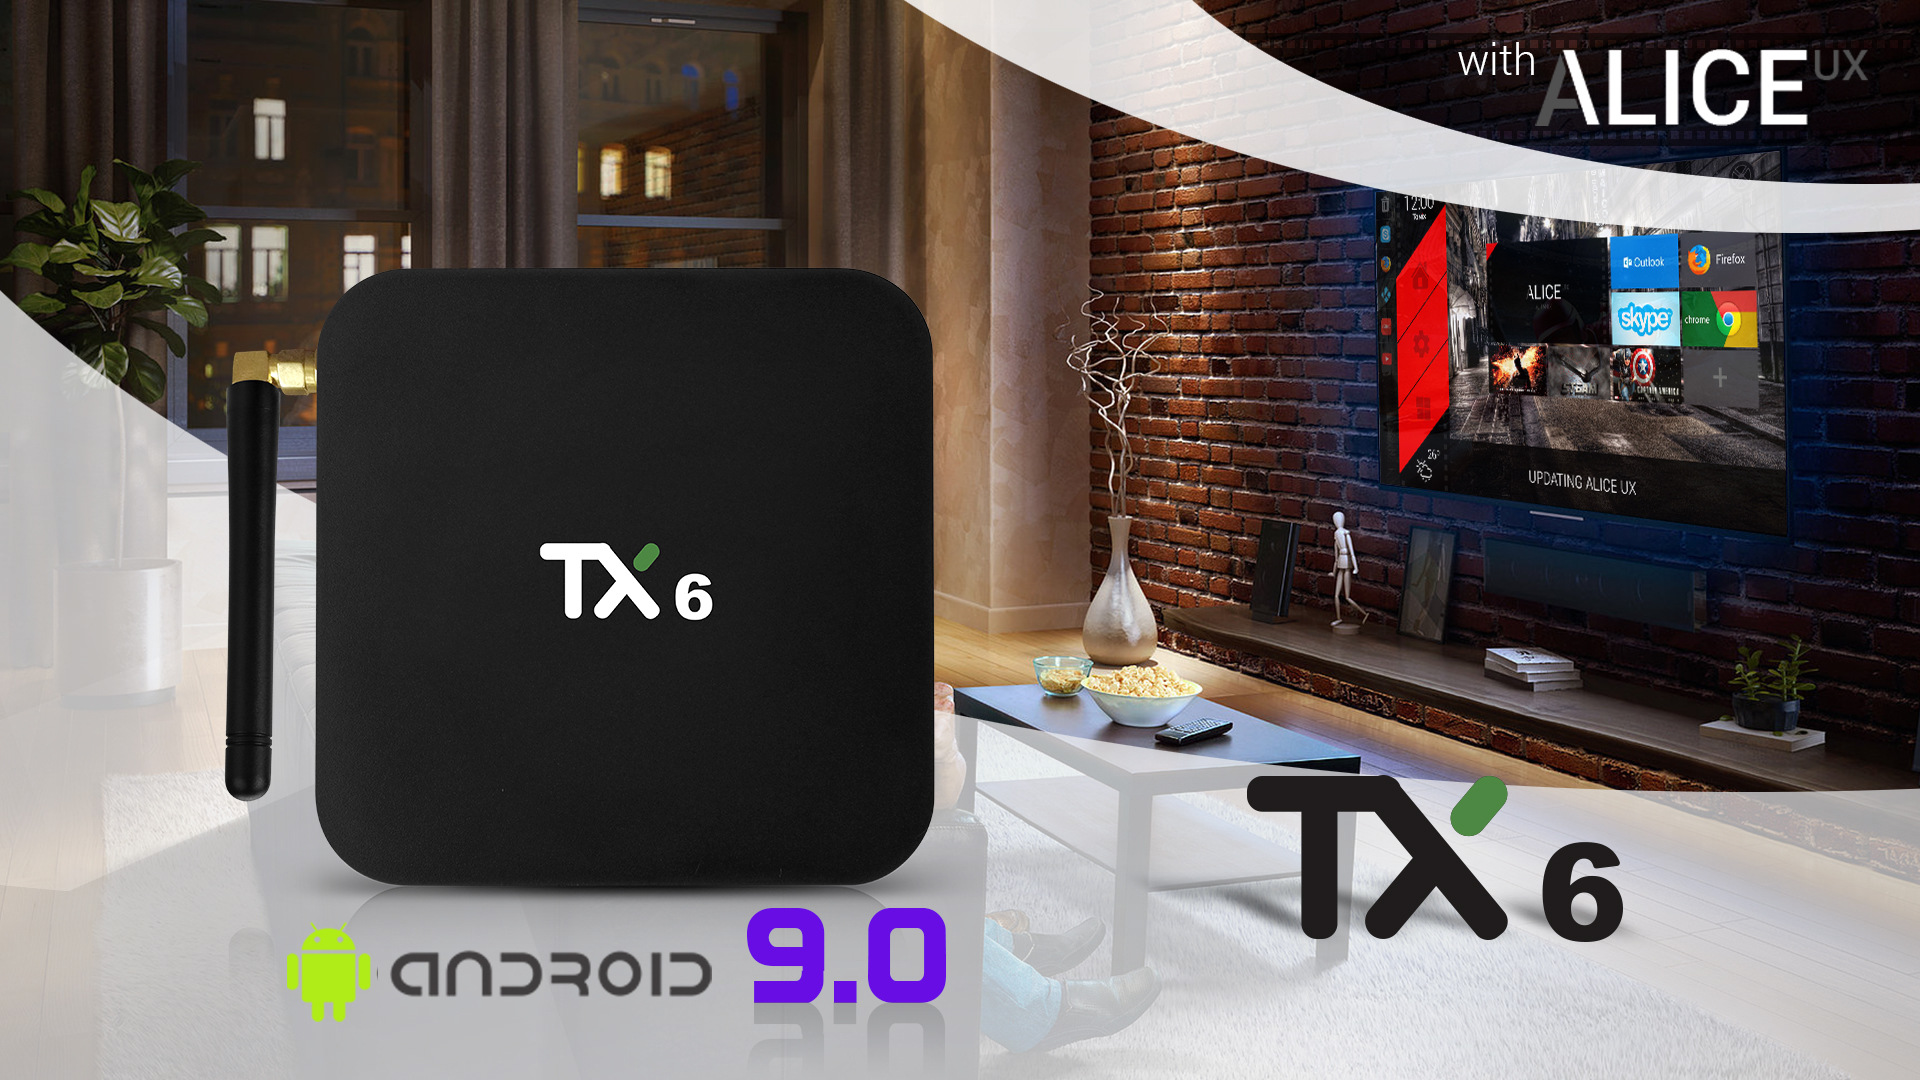 US $35 71 |Tanix TX6 Smart TV Box Android 9 0 4K 4GB/32GB BT Wifi Youtube  H 265 Set Top Box TX6 Media Player-in Set-top Boxes from Consumer